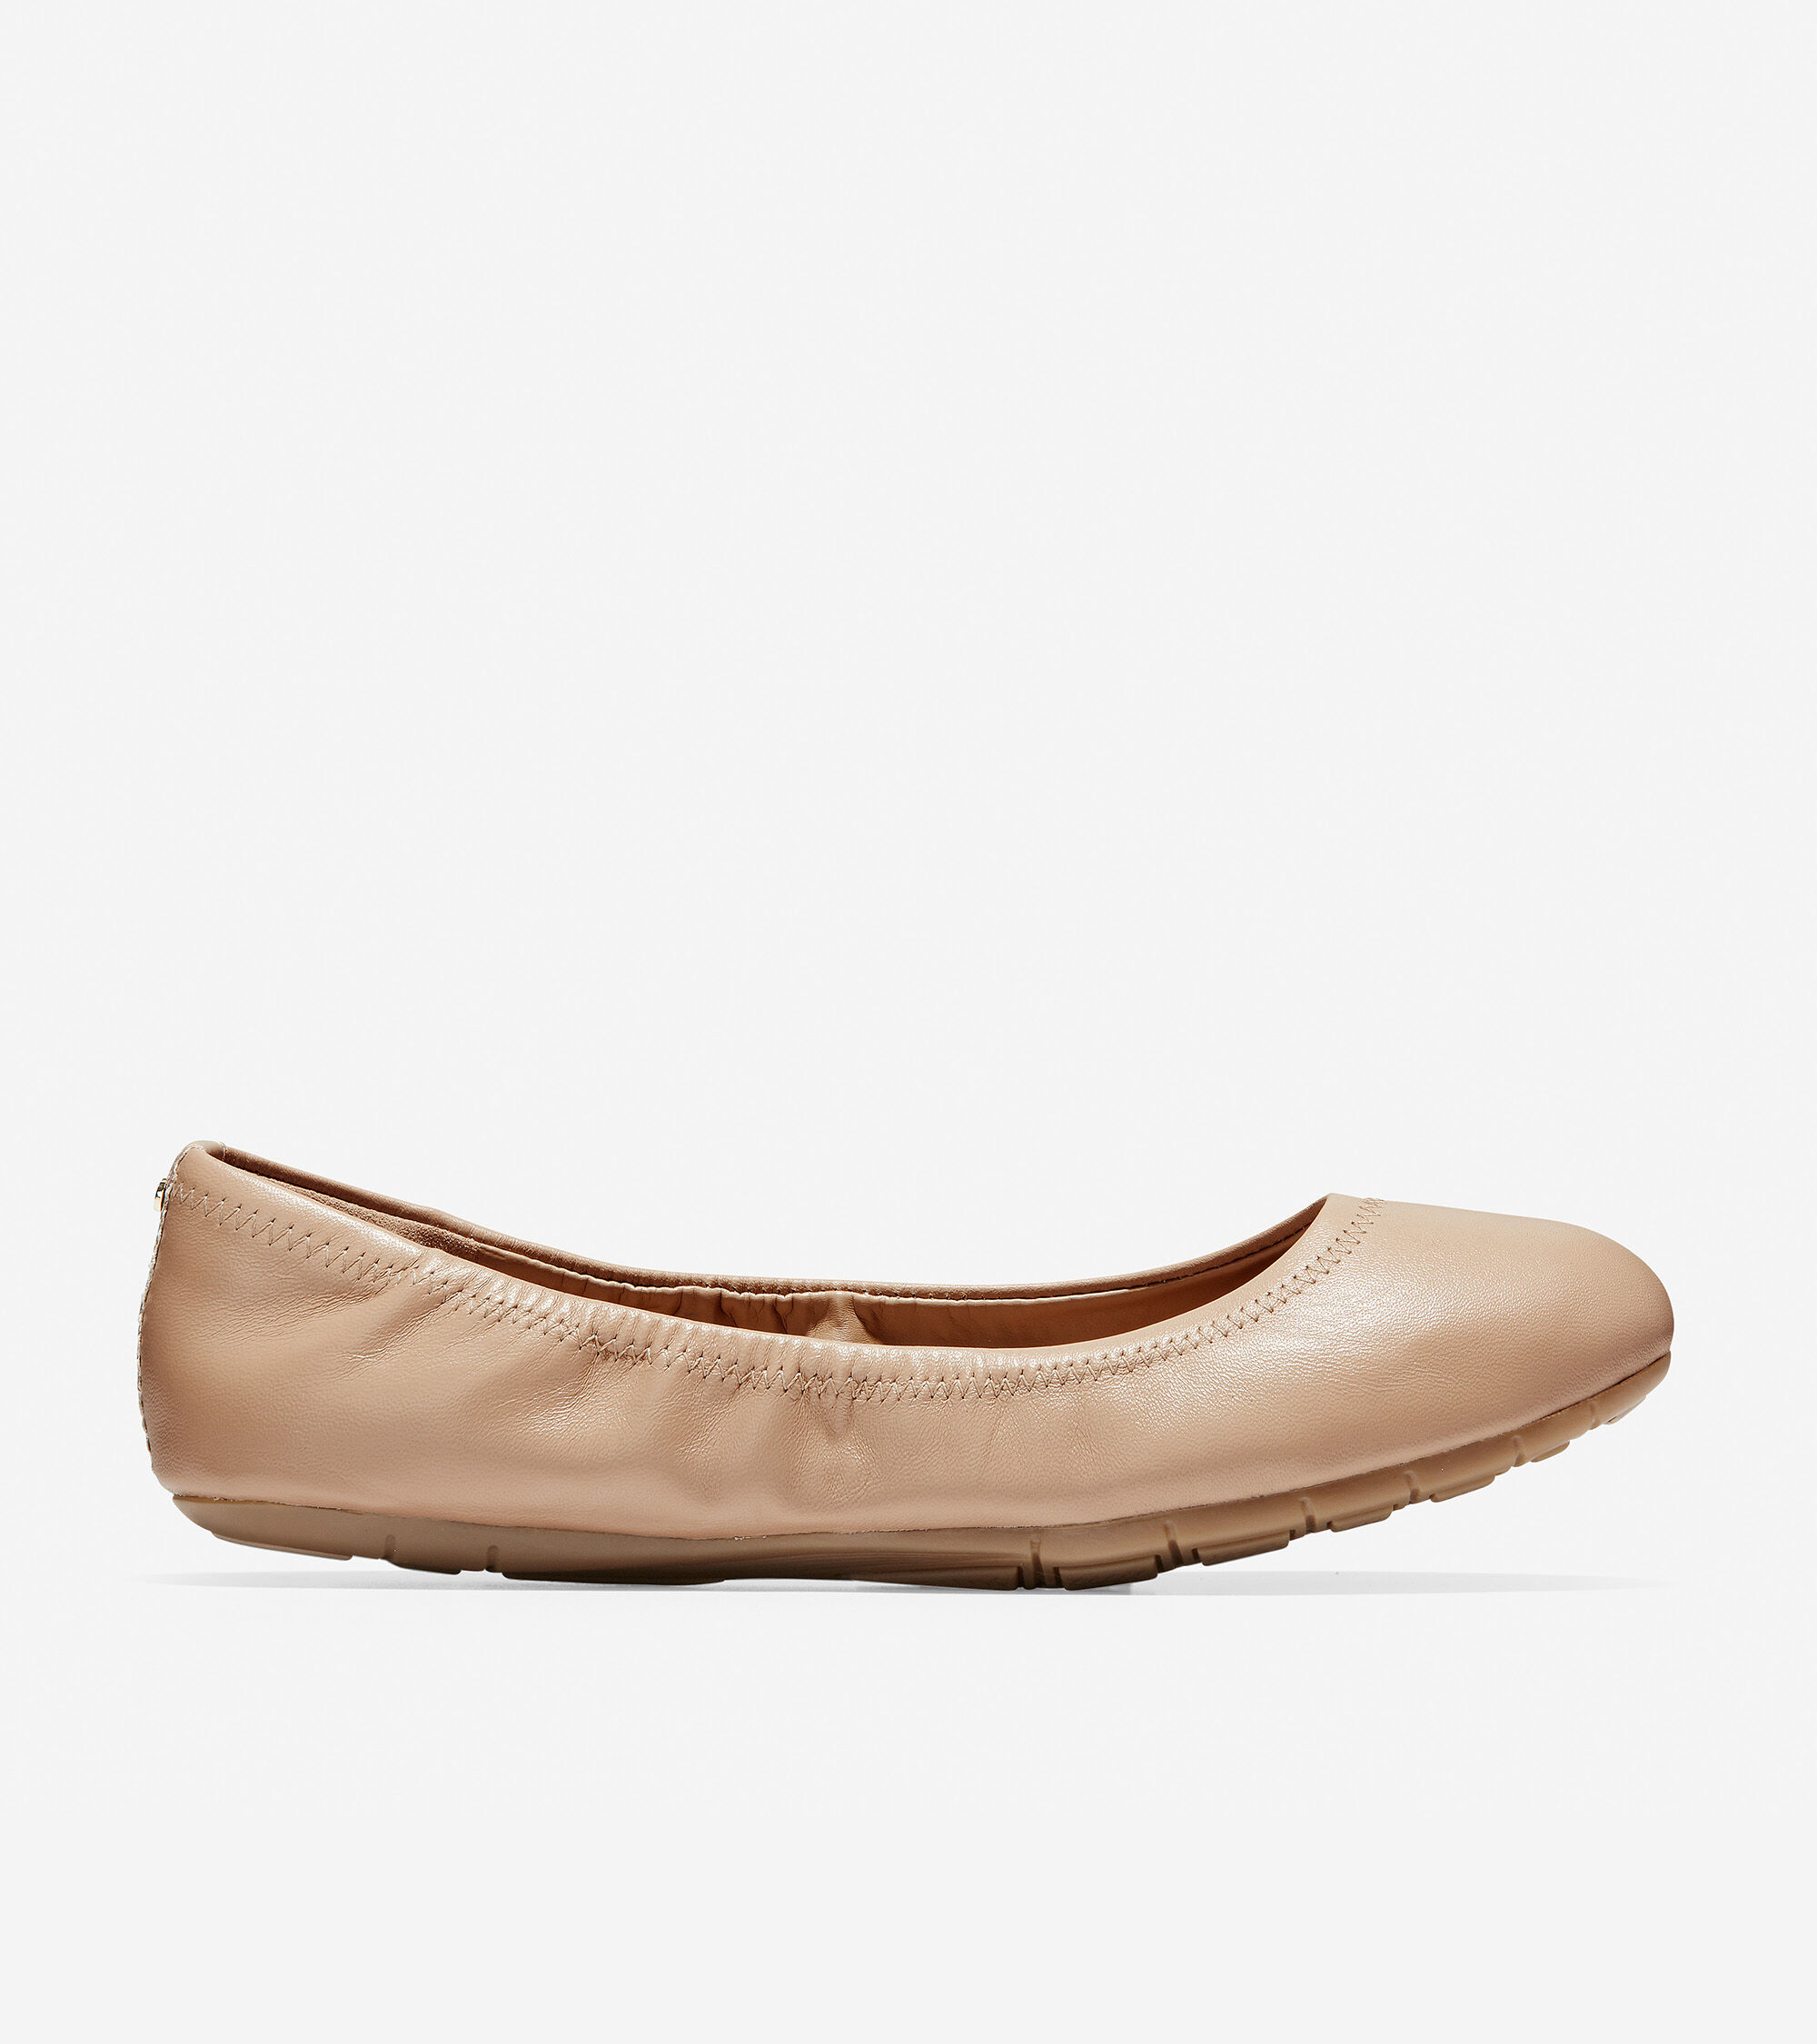 cole haan shoes used in she was pretty vietsub epf 718076